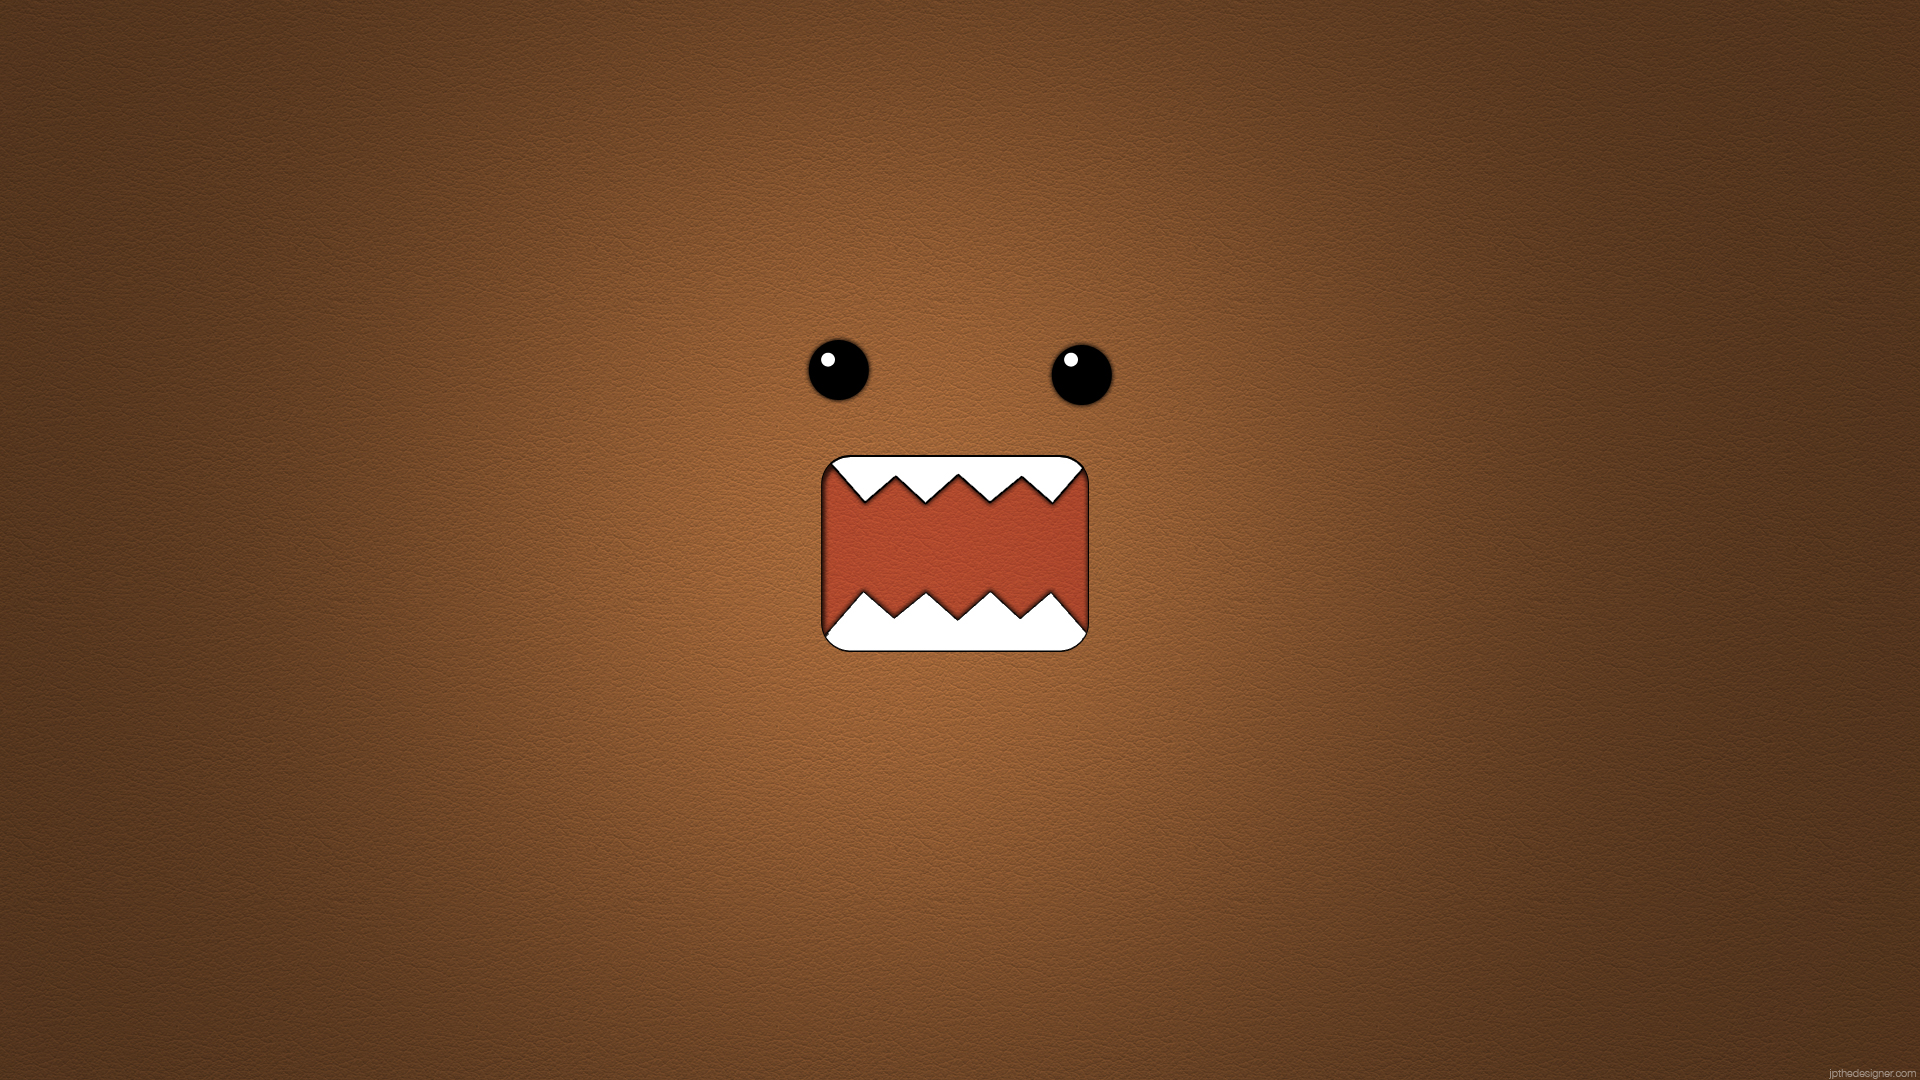 domo wallpaper leather colorjpg 1920x1080